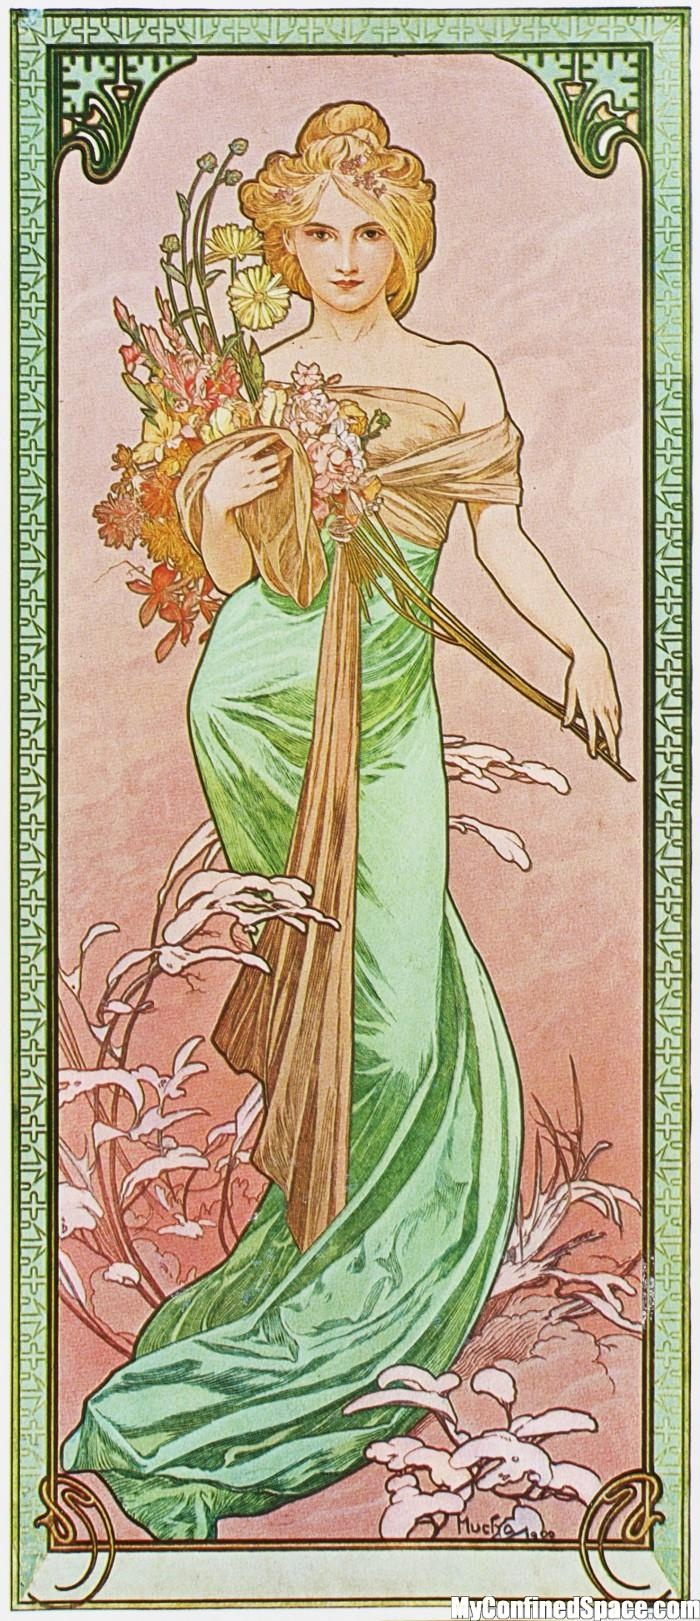 Alphonse Mucha, Le Printemps. Very easy costume: Would need long strapless green dress, brown fabric, and some flowers.